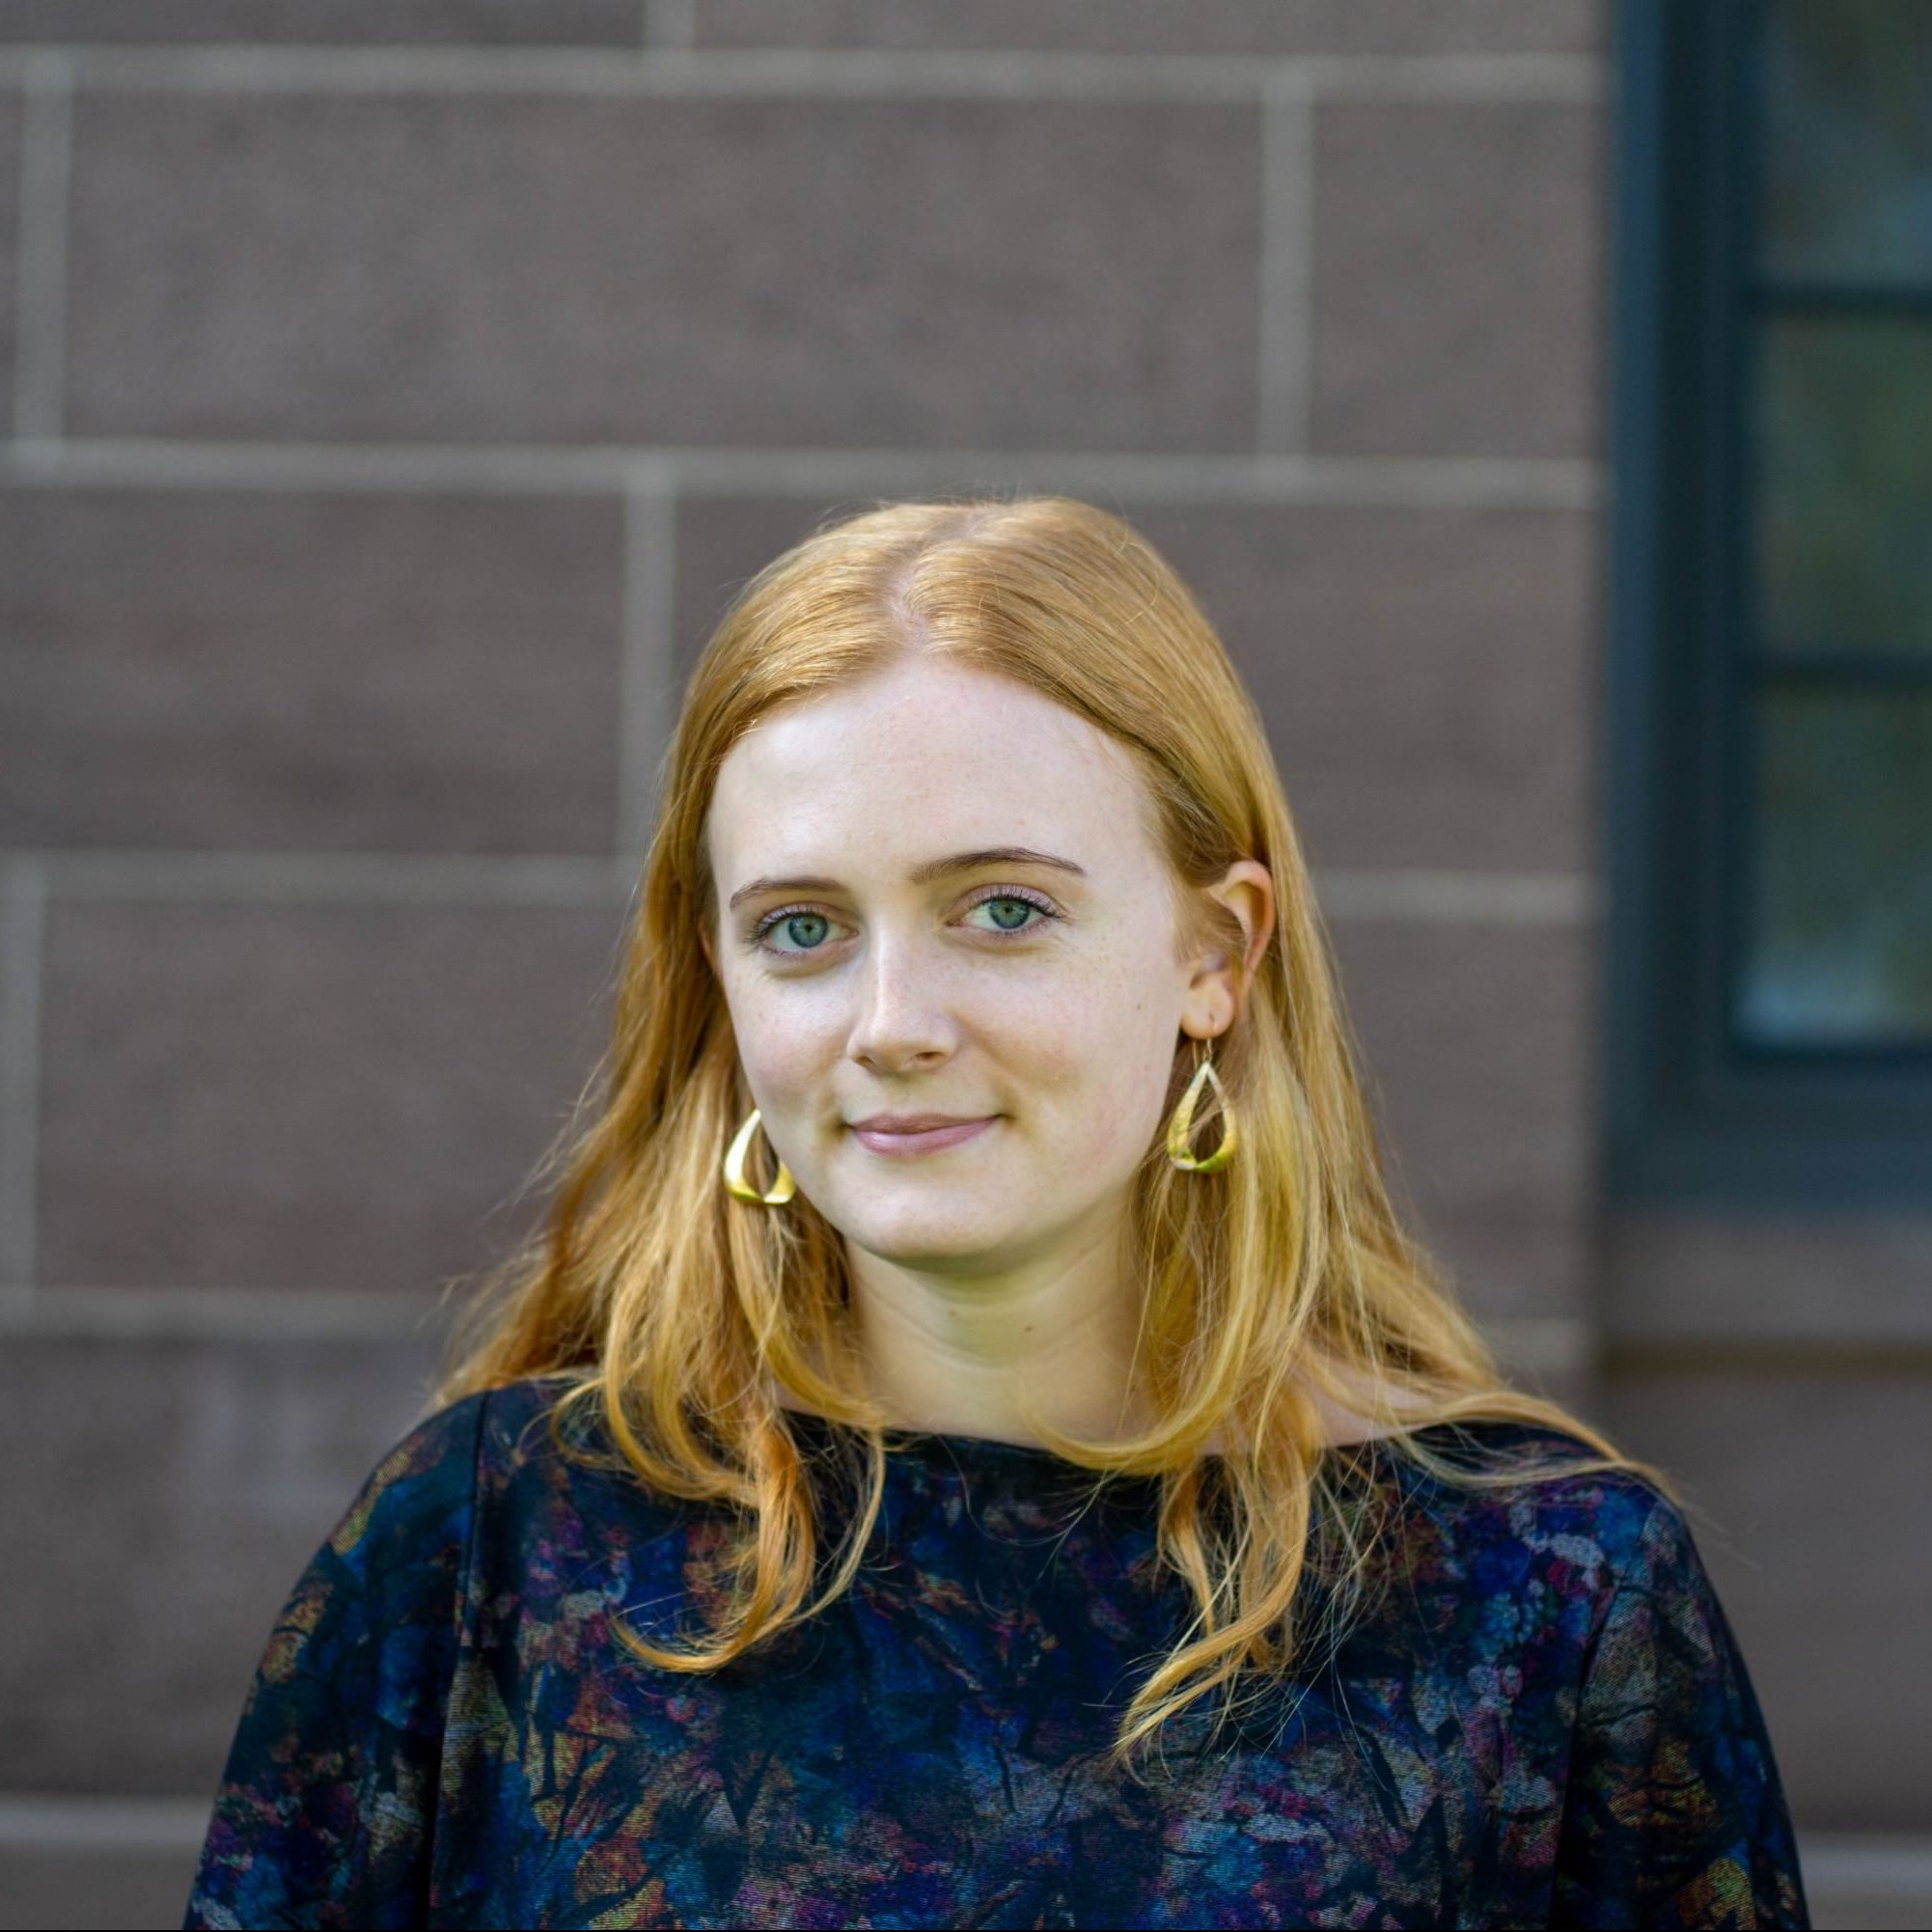 Emma Frohardt standing in front of a brick building. She is a white woman in her twenties with medium-length reddish blond hair. She is wearing gold earrings as she smiles at the camera.